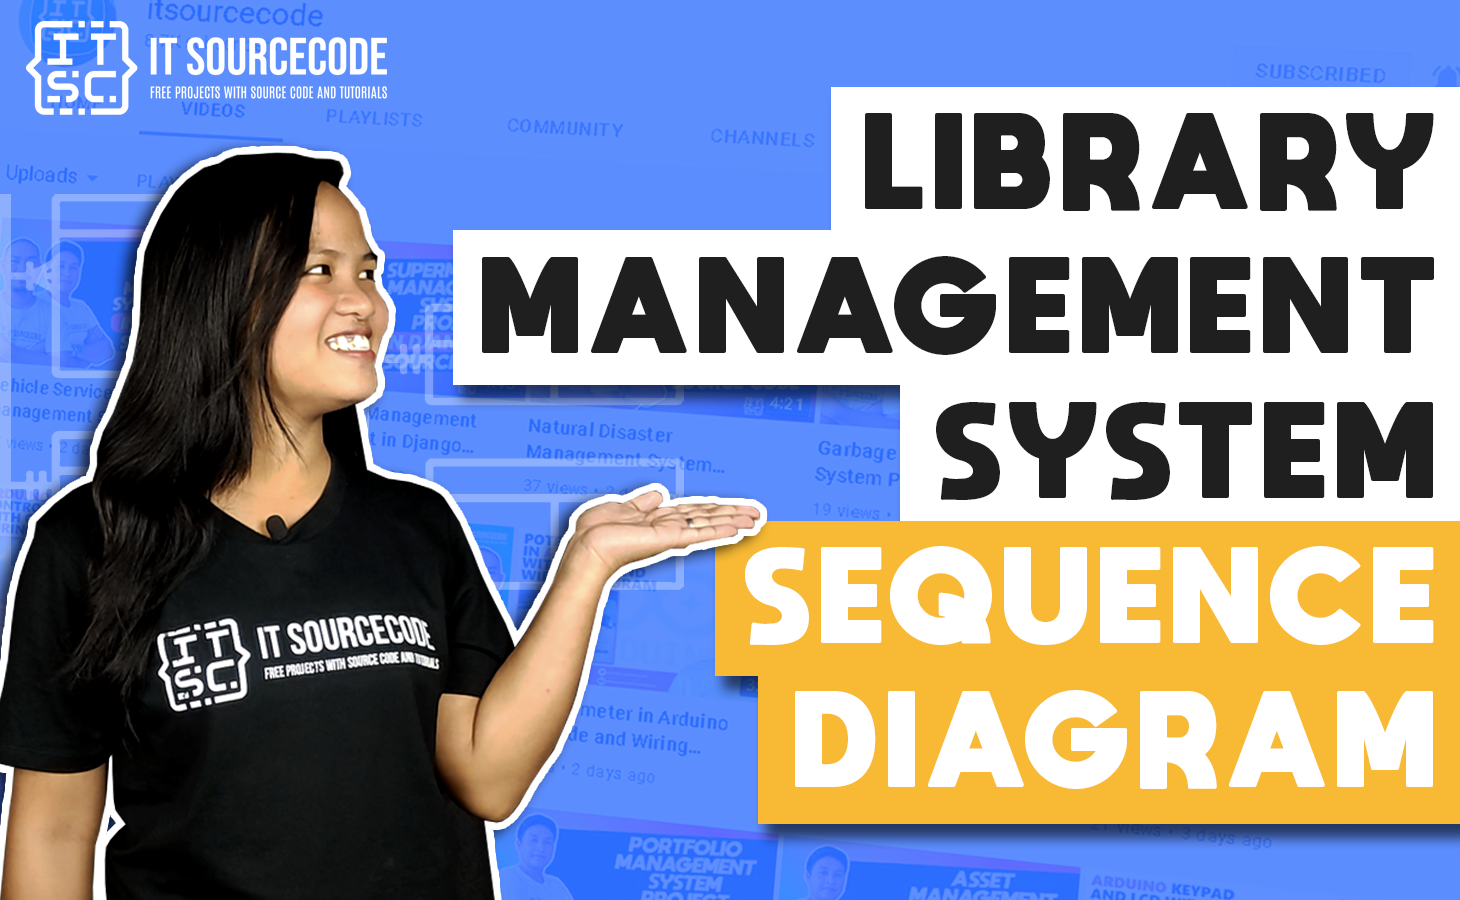 Library Management System Sequence Diagram